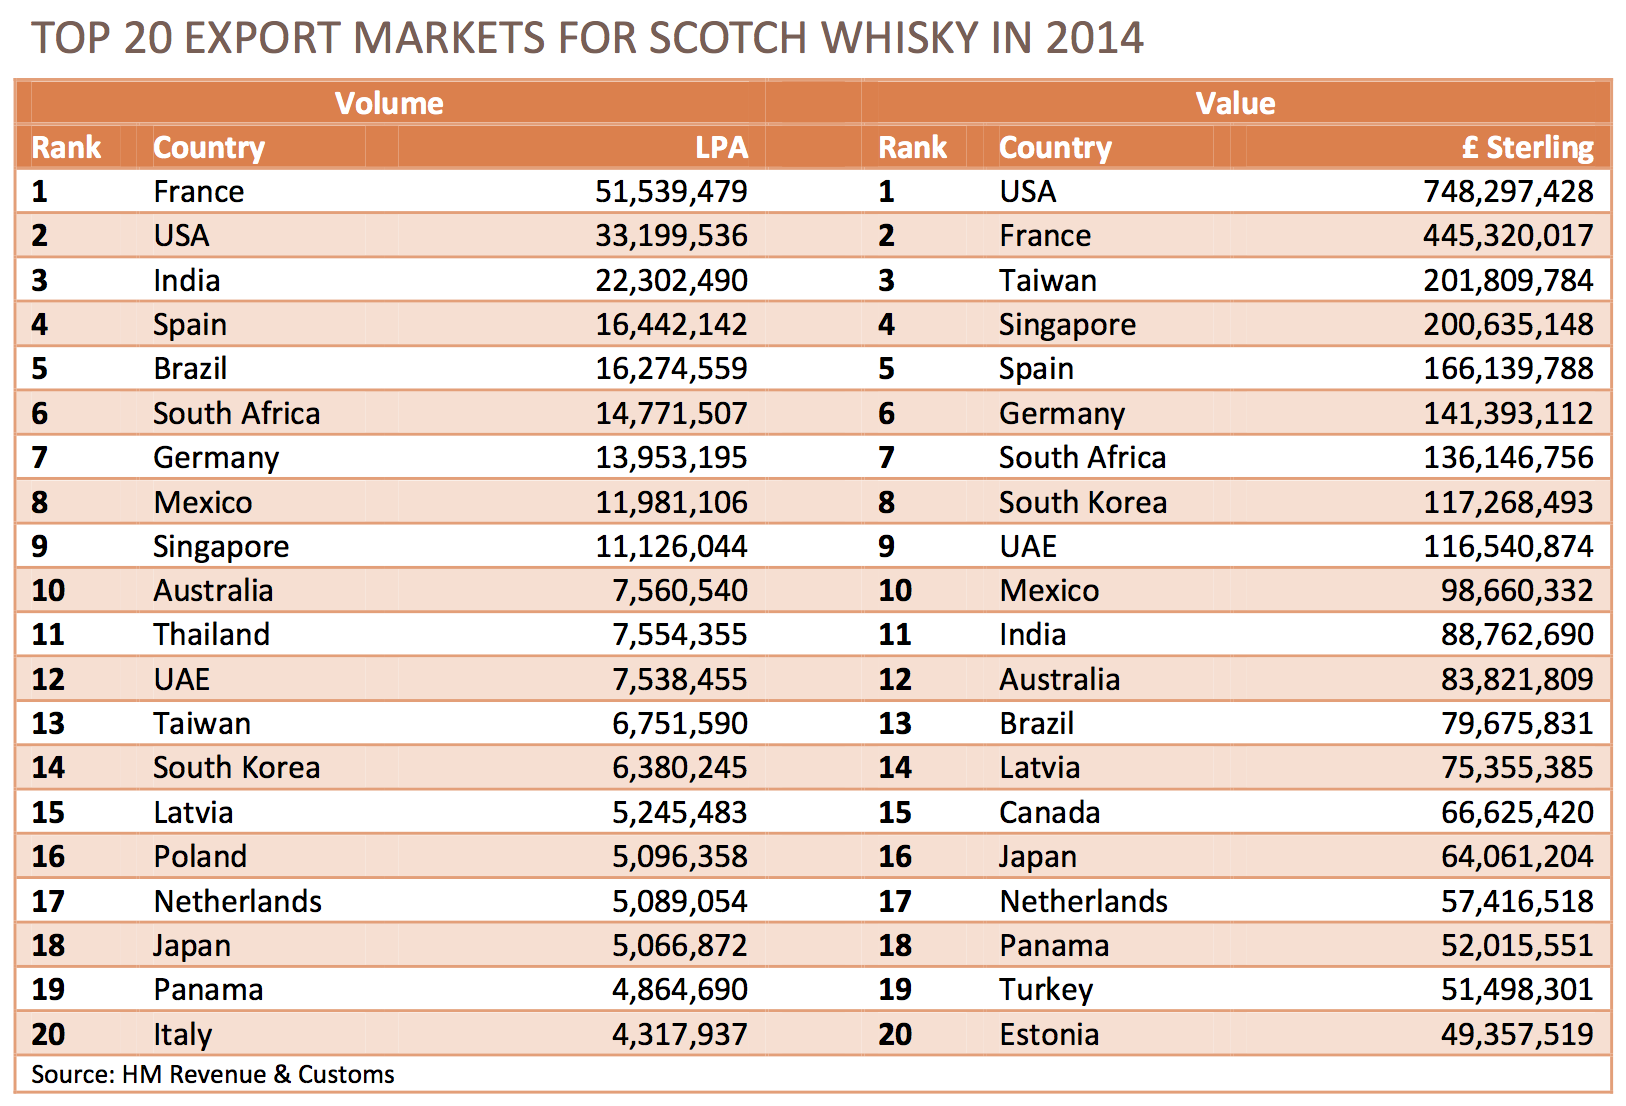 Top 20 Export Mkts for Scotch Whisky in 2014 (Table)